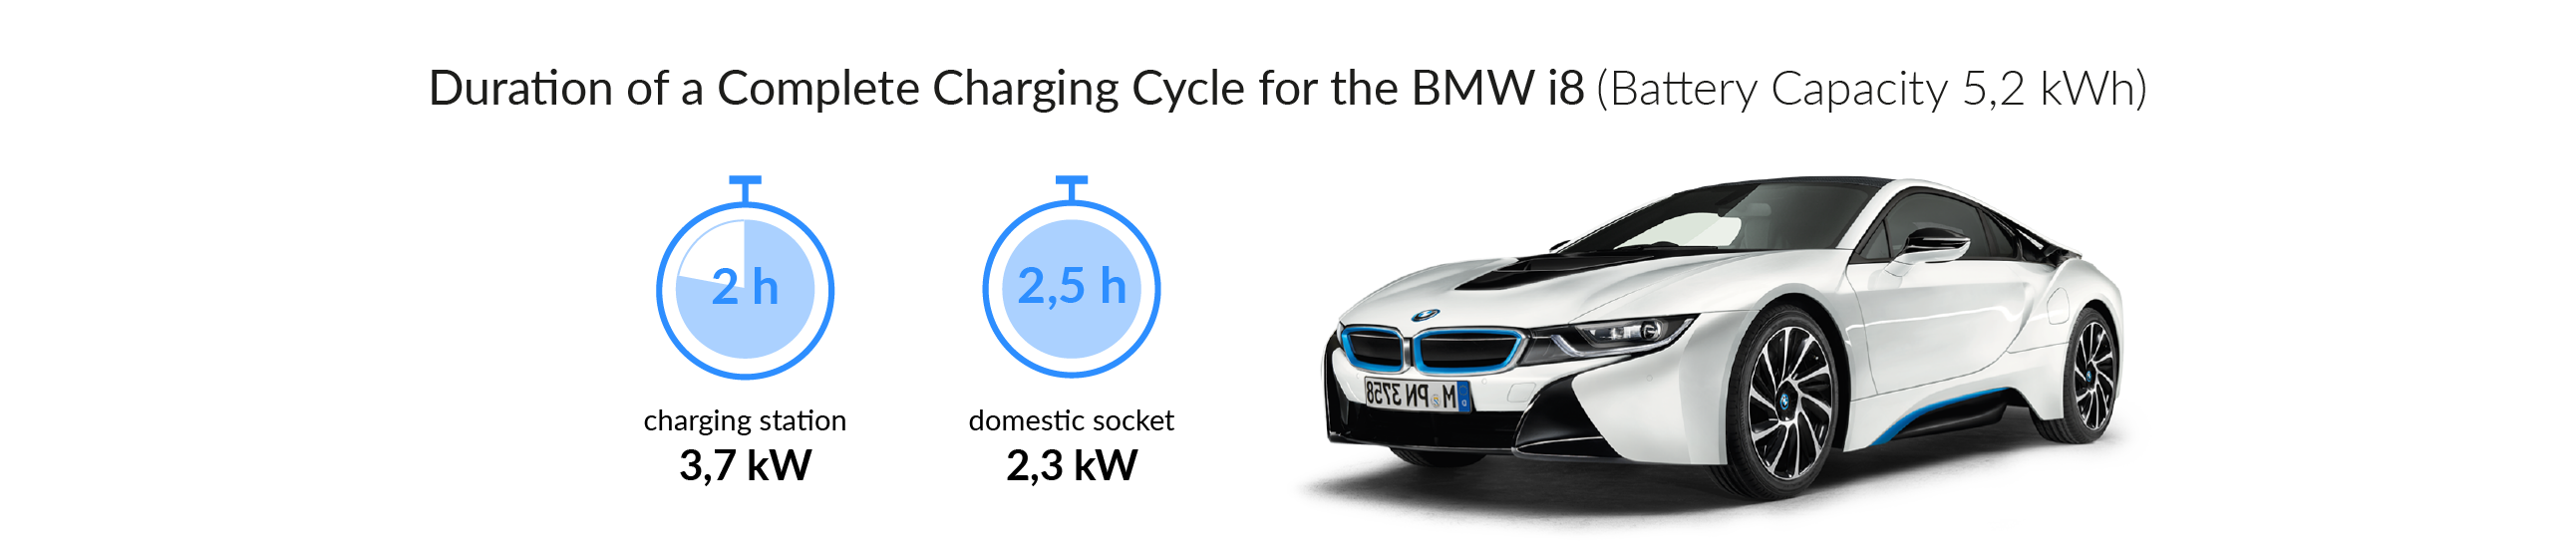 Charging time for your BMW i8